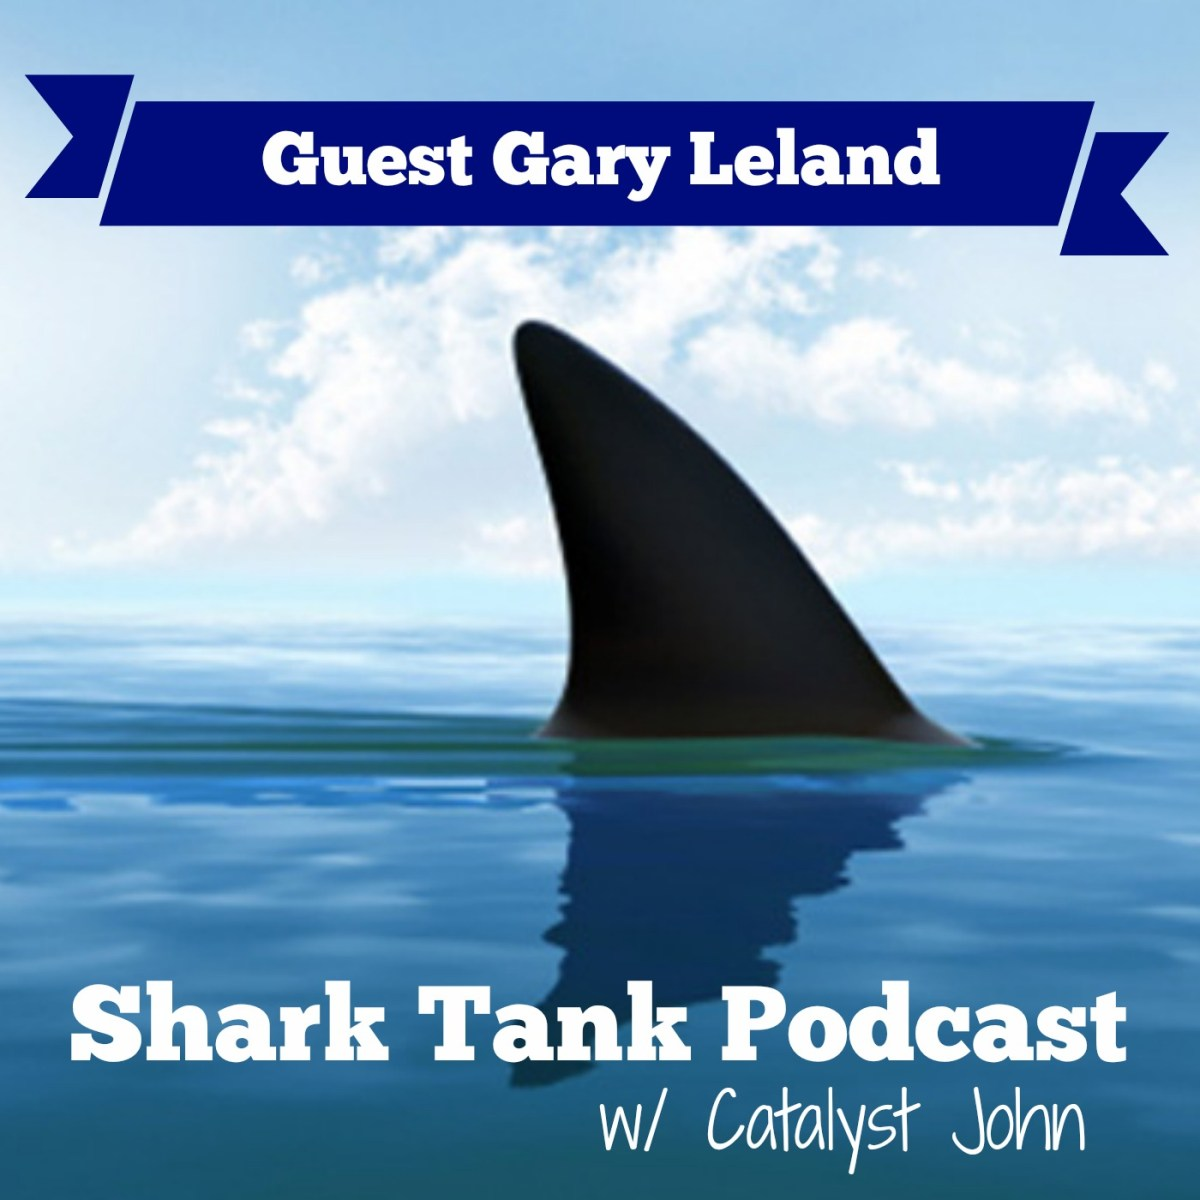 Interviewed on The Shark Tank Podcast